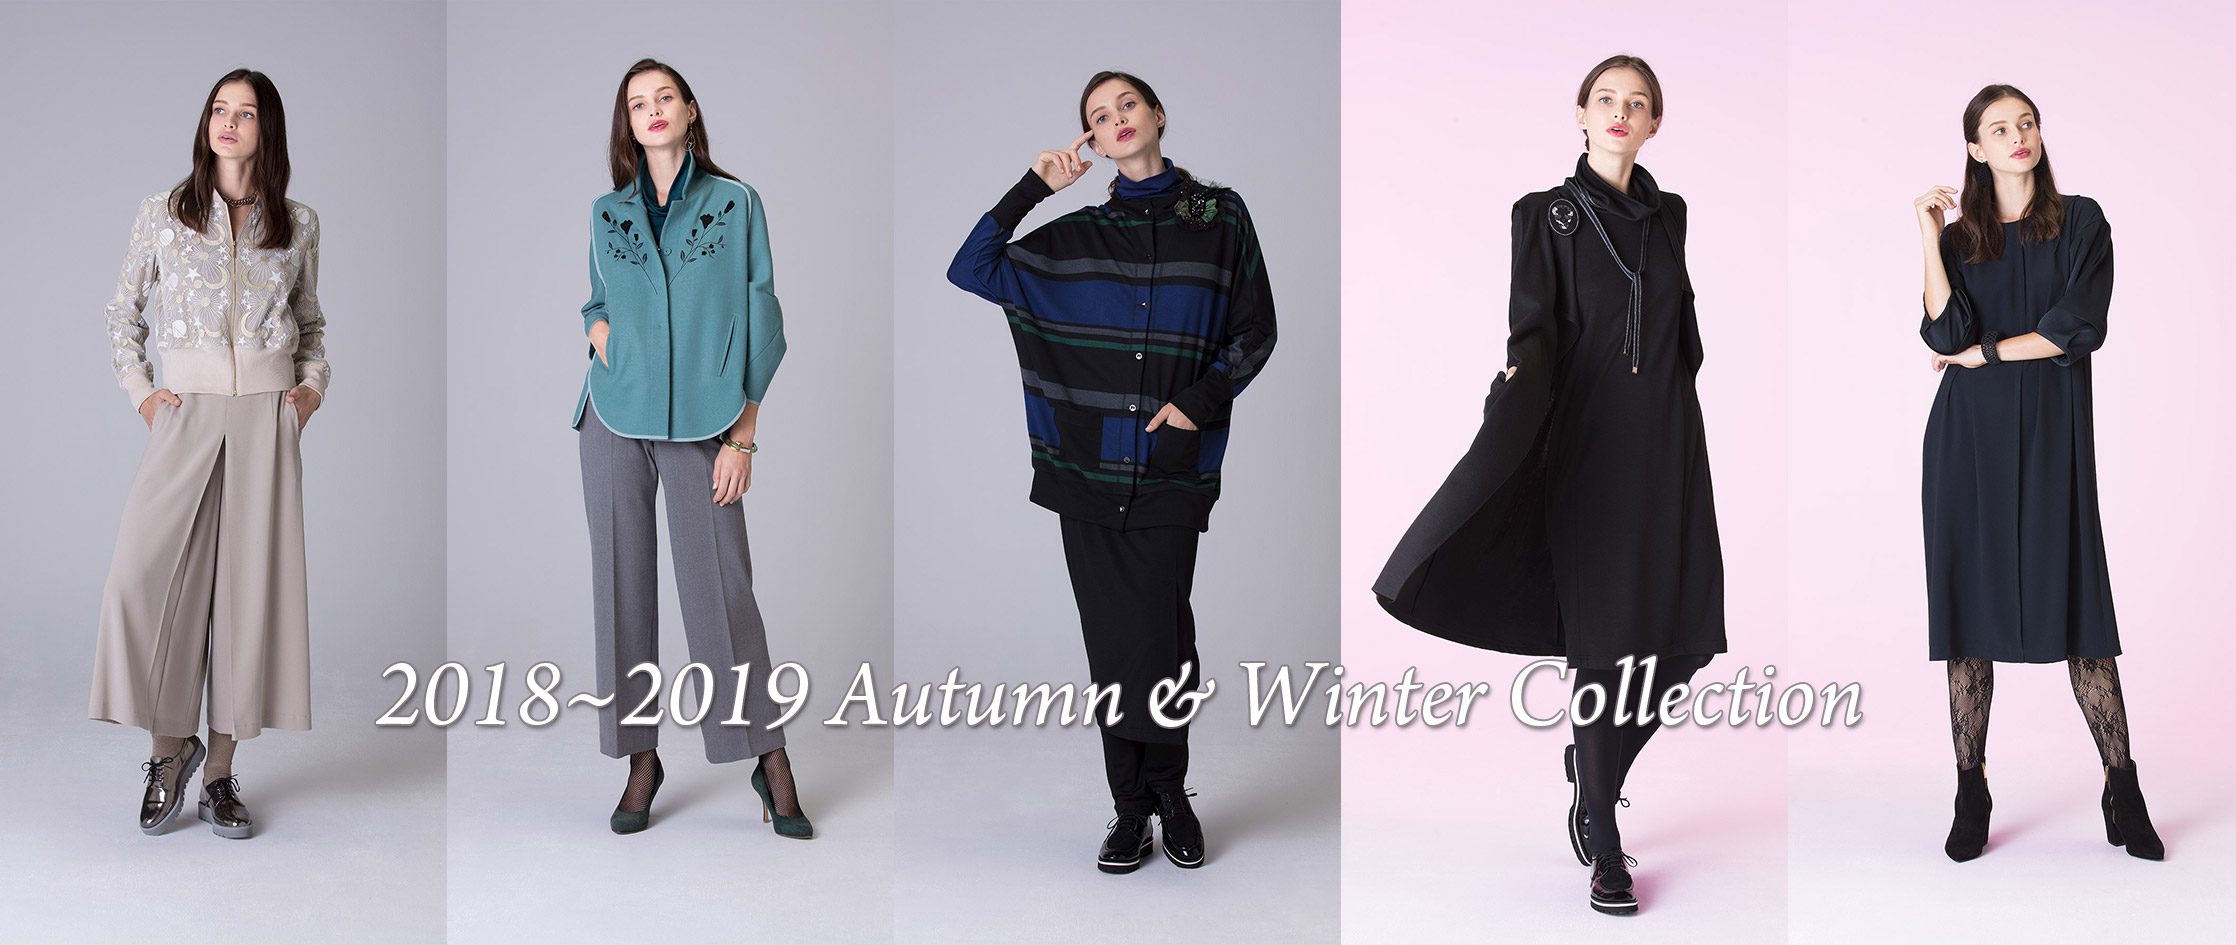 2018-19 Autumn & Winter Collection 2